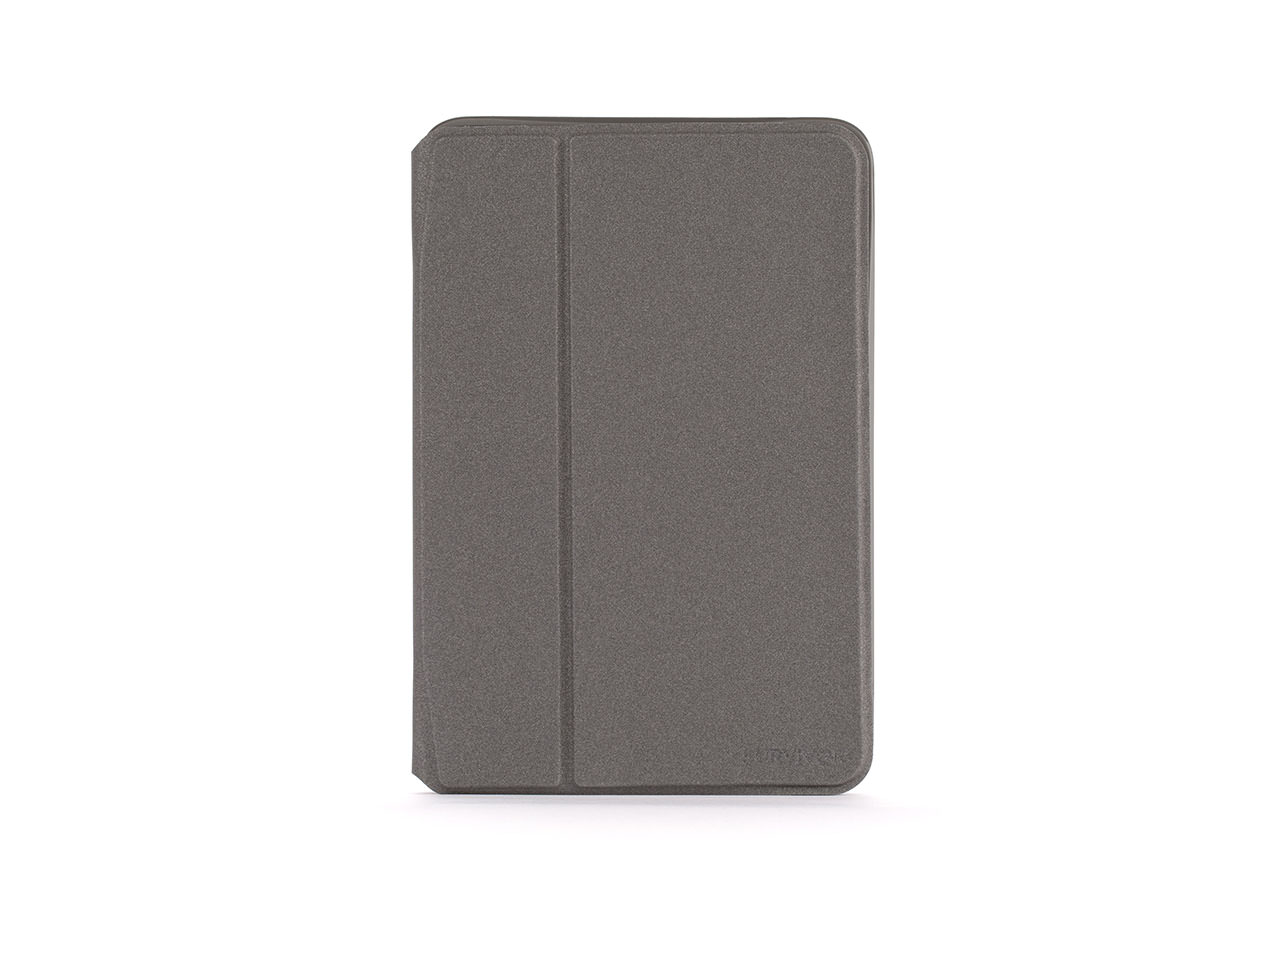 iPad mini 4 Protective Case